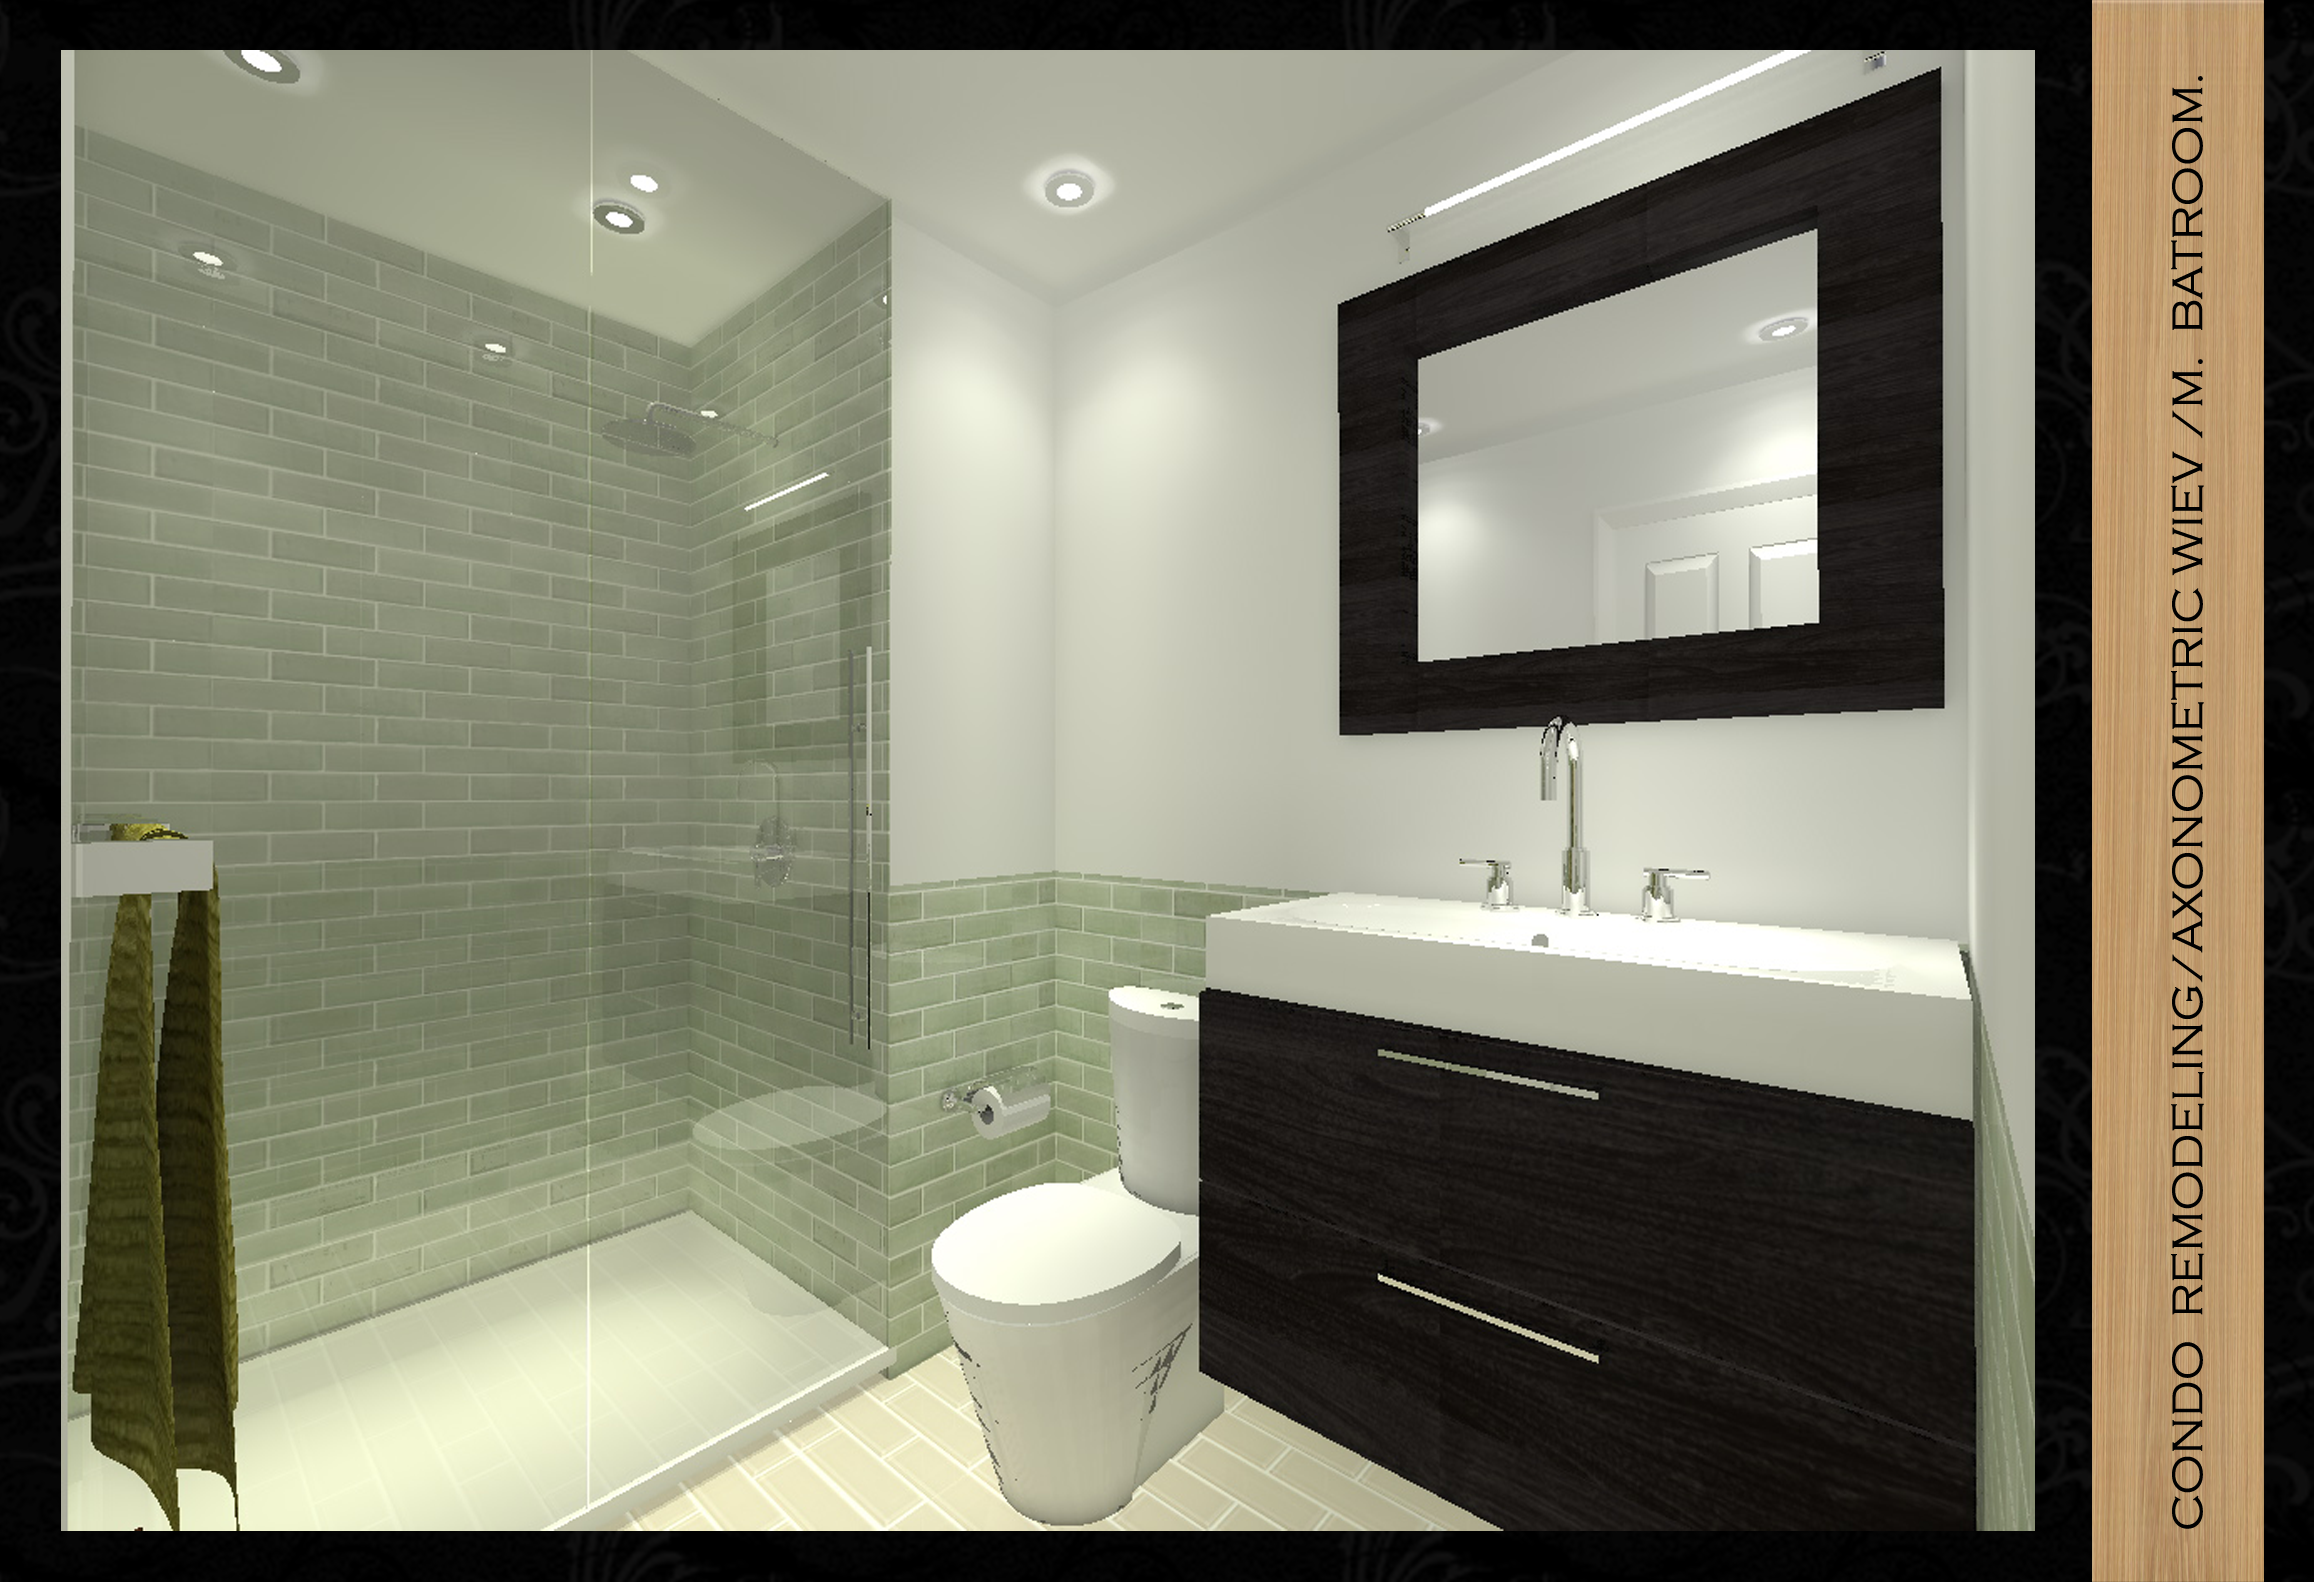 Viewdesignerproject projectkitchen design designed by marija mihailovic condo Bathroom design for condominium